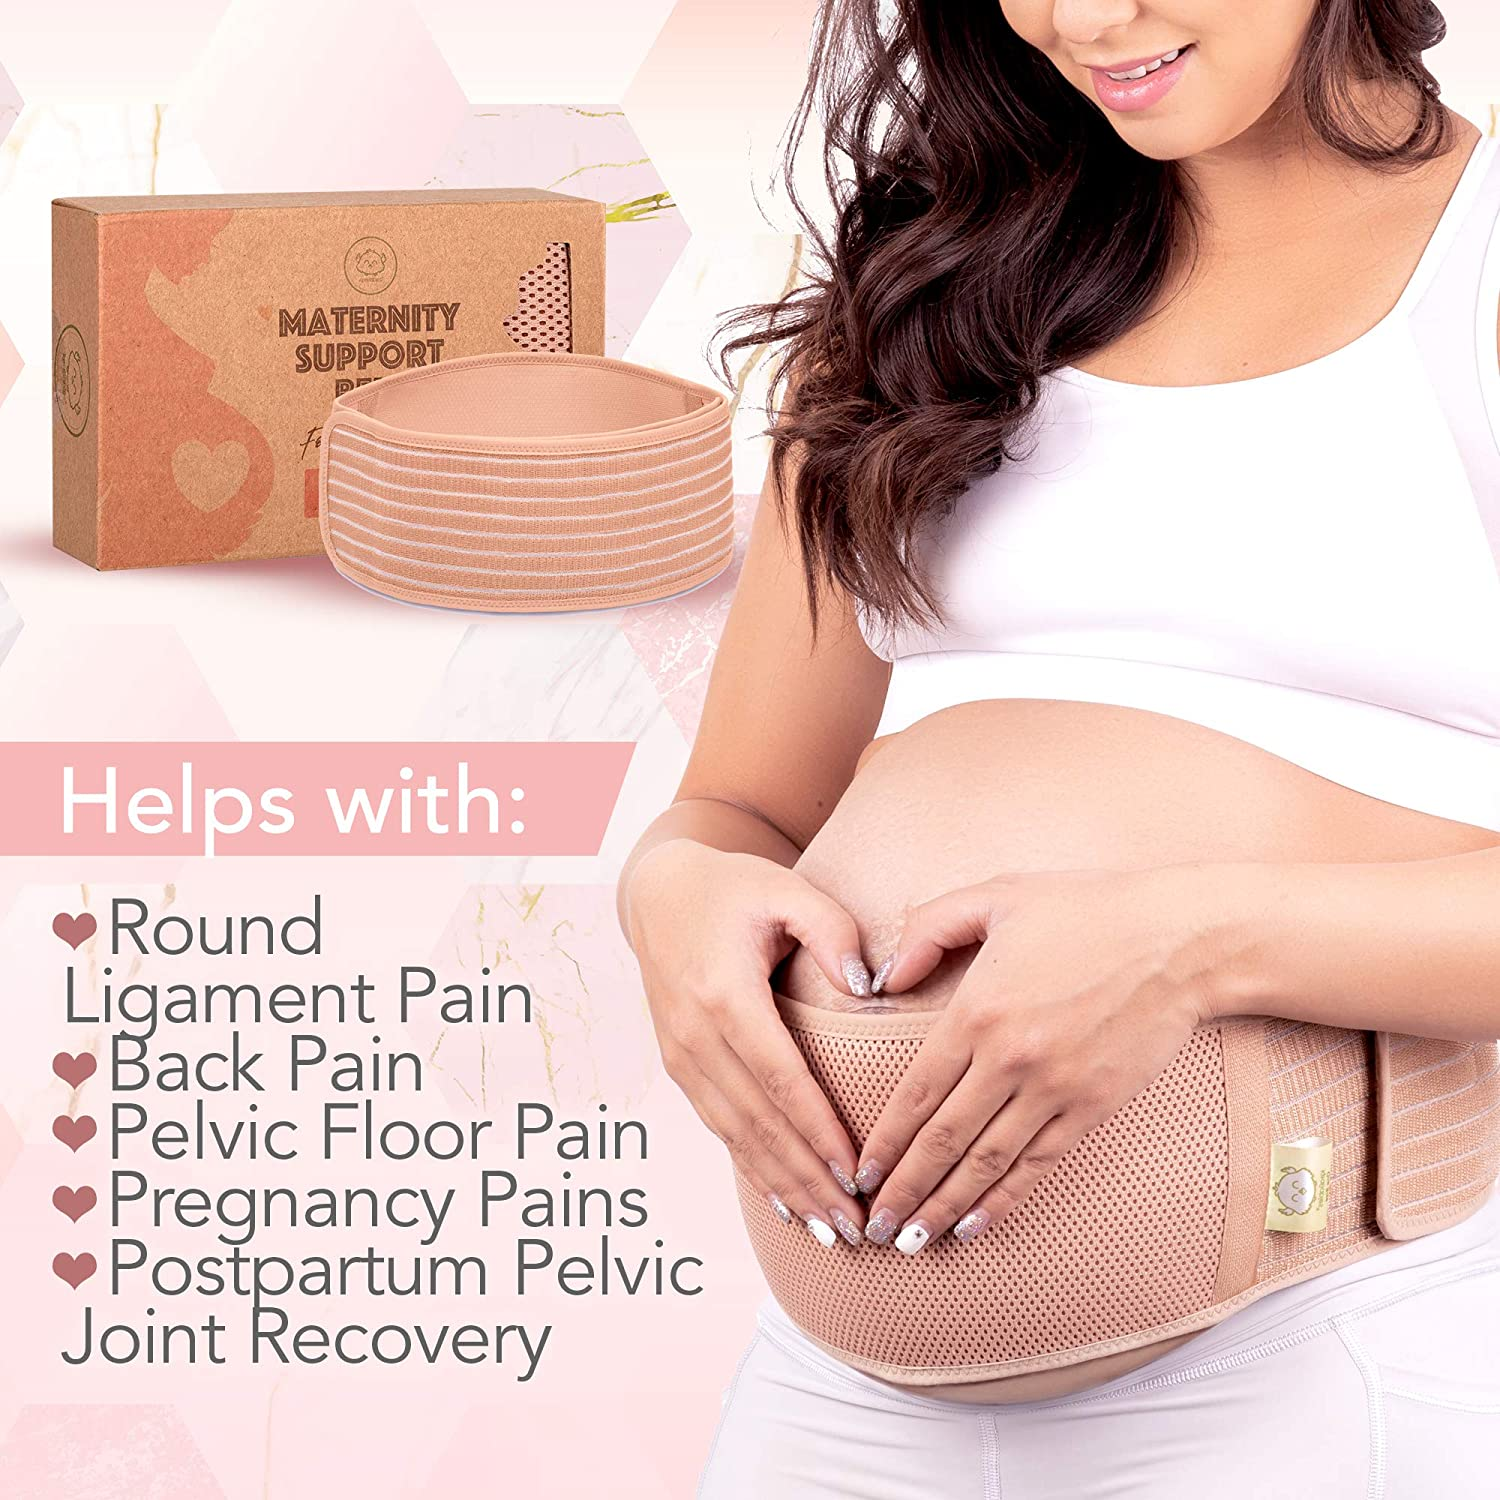 Maternity Belly Band for Pregnancy - Soft & Breathable Pregnancy Belly Support Belt - Pelvic Support Bands - Tummy Bandit Sling for Pants - Pregnancy Back Brace (Classic Ivory, One Size): Industrial & Scientific